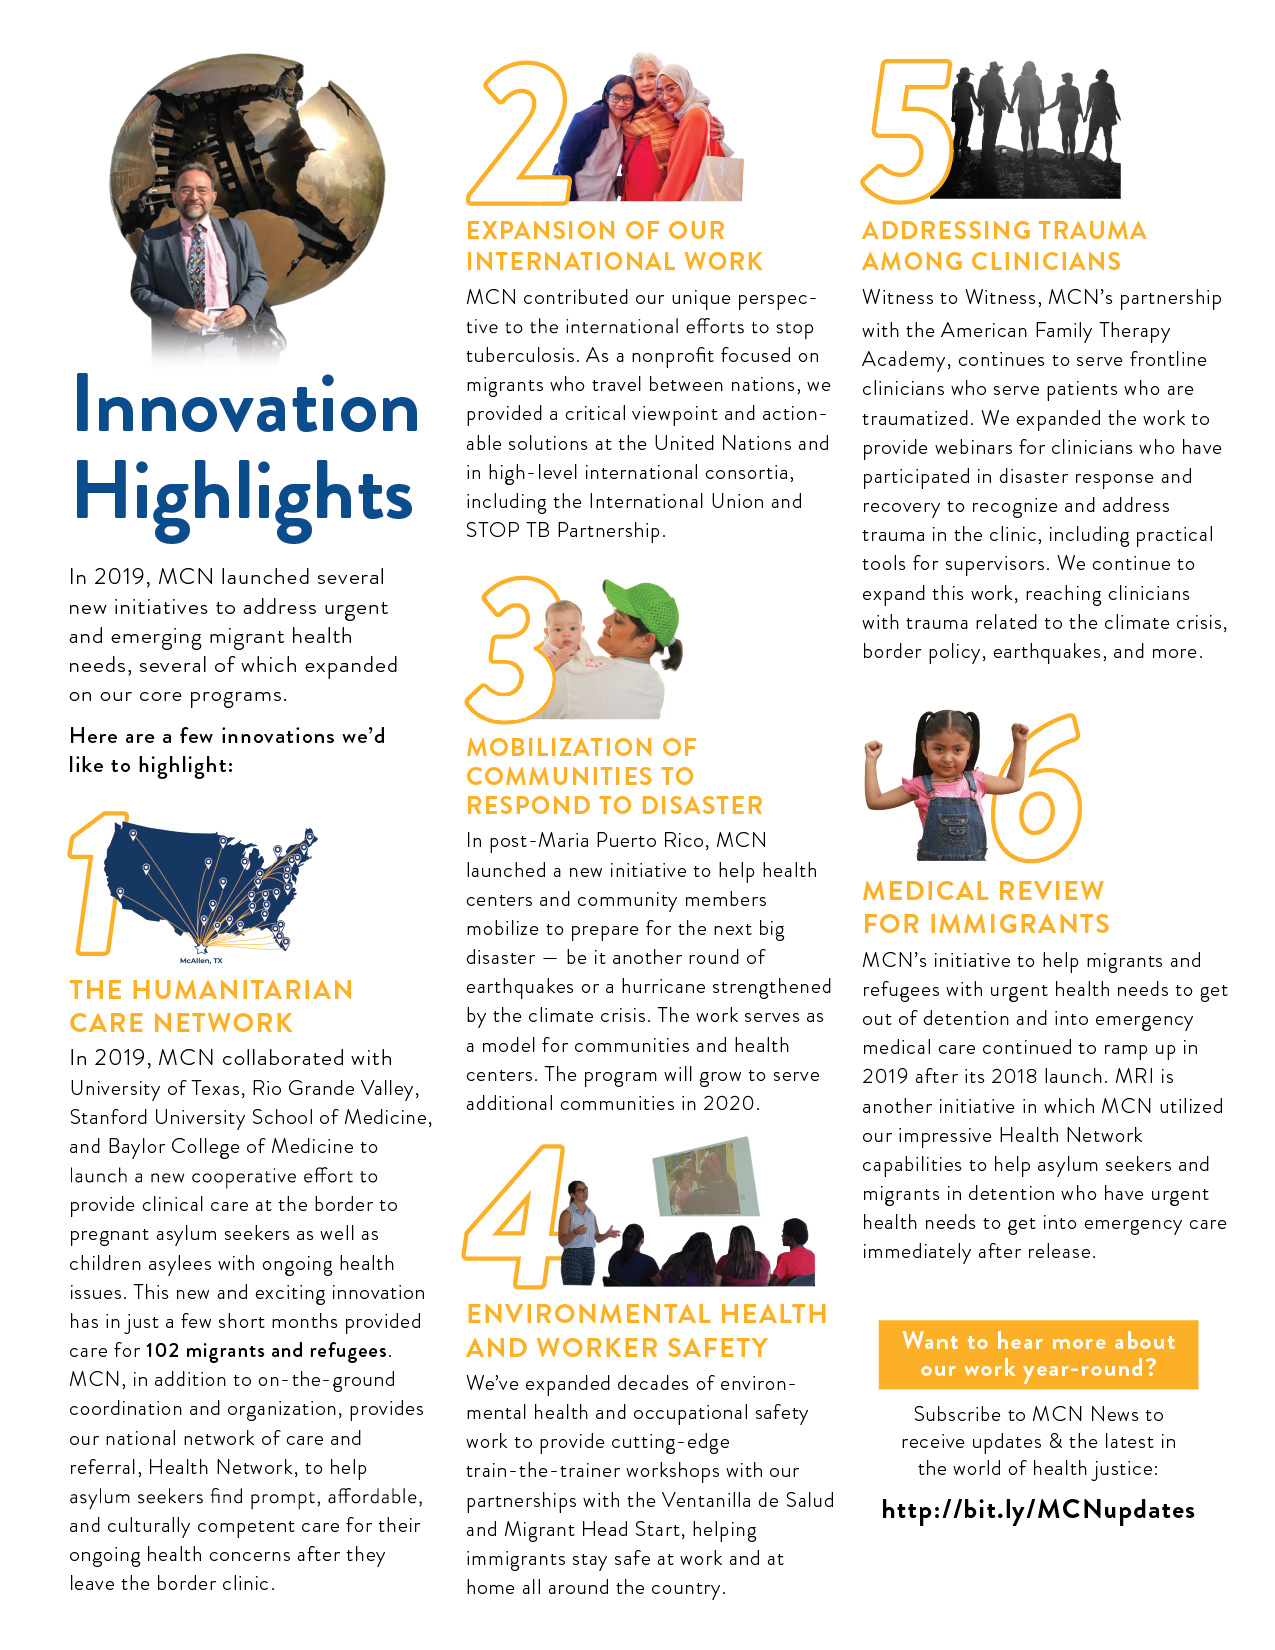 The Innovation Highlights page of the 2019 Year in Review